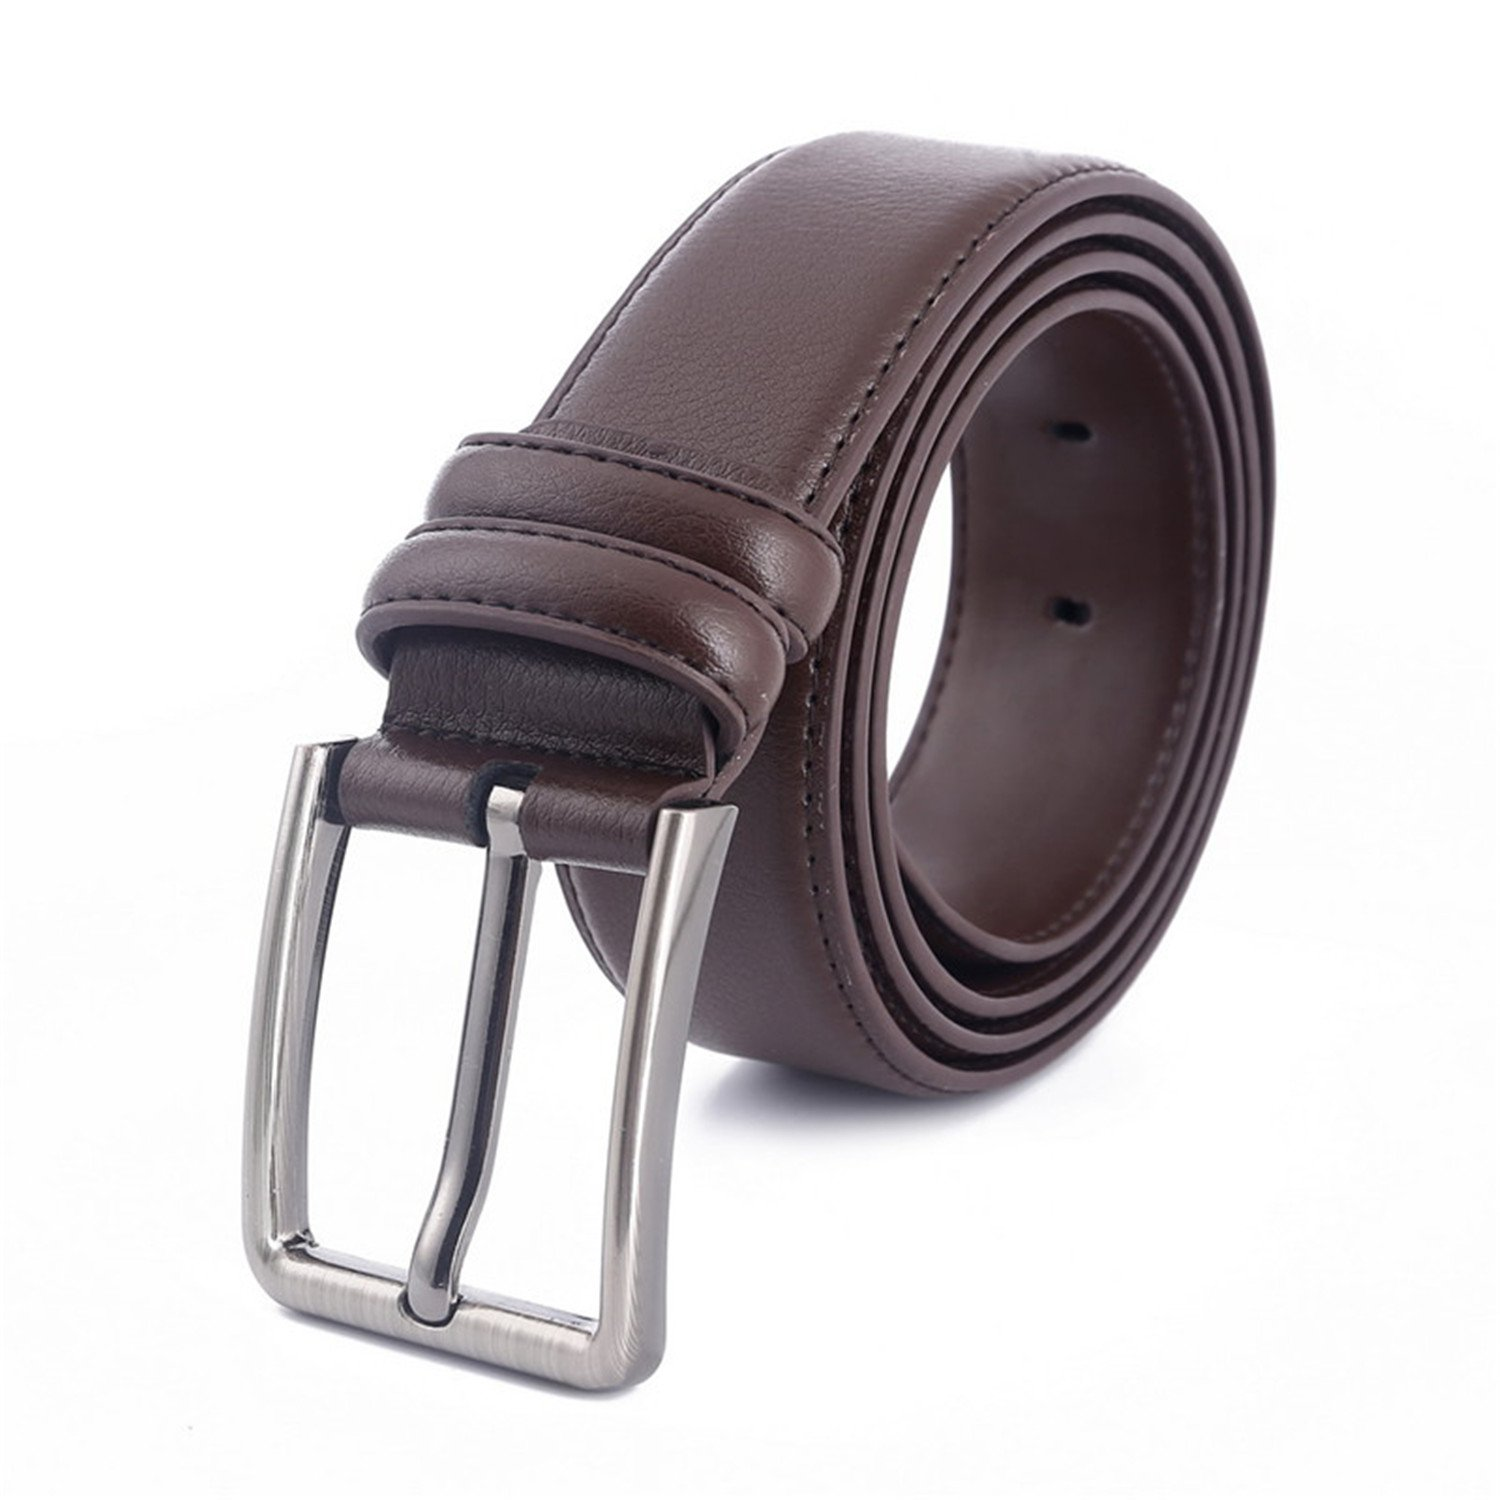 Coffee Thadensama New Fashion Mens Pin Buckle Belt Genuine Leather Belts For Women Couples Unisex Red Belt